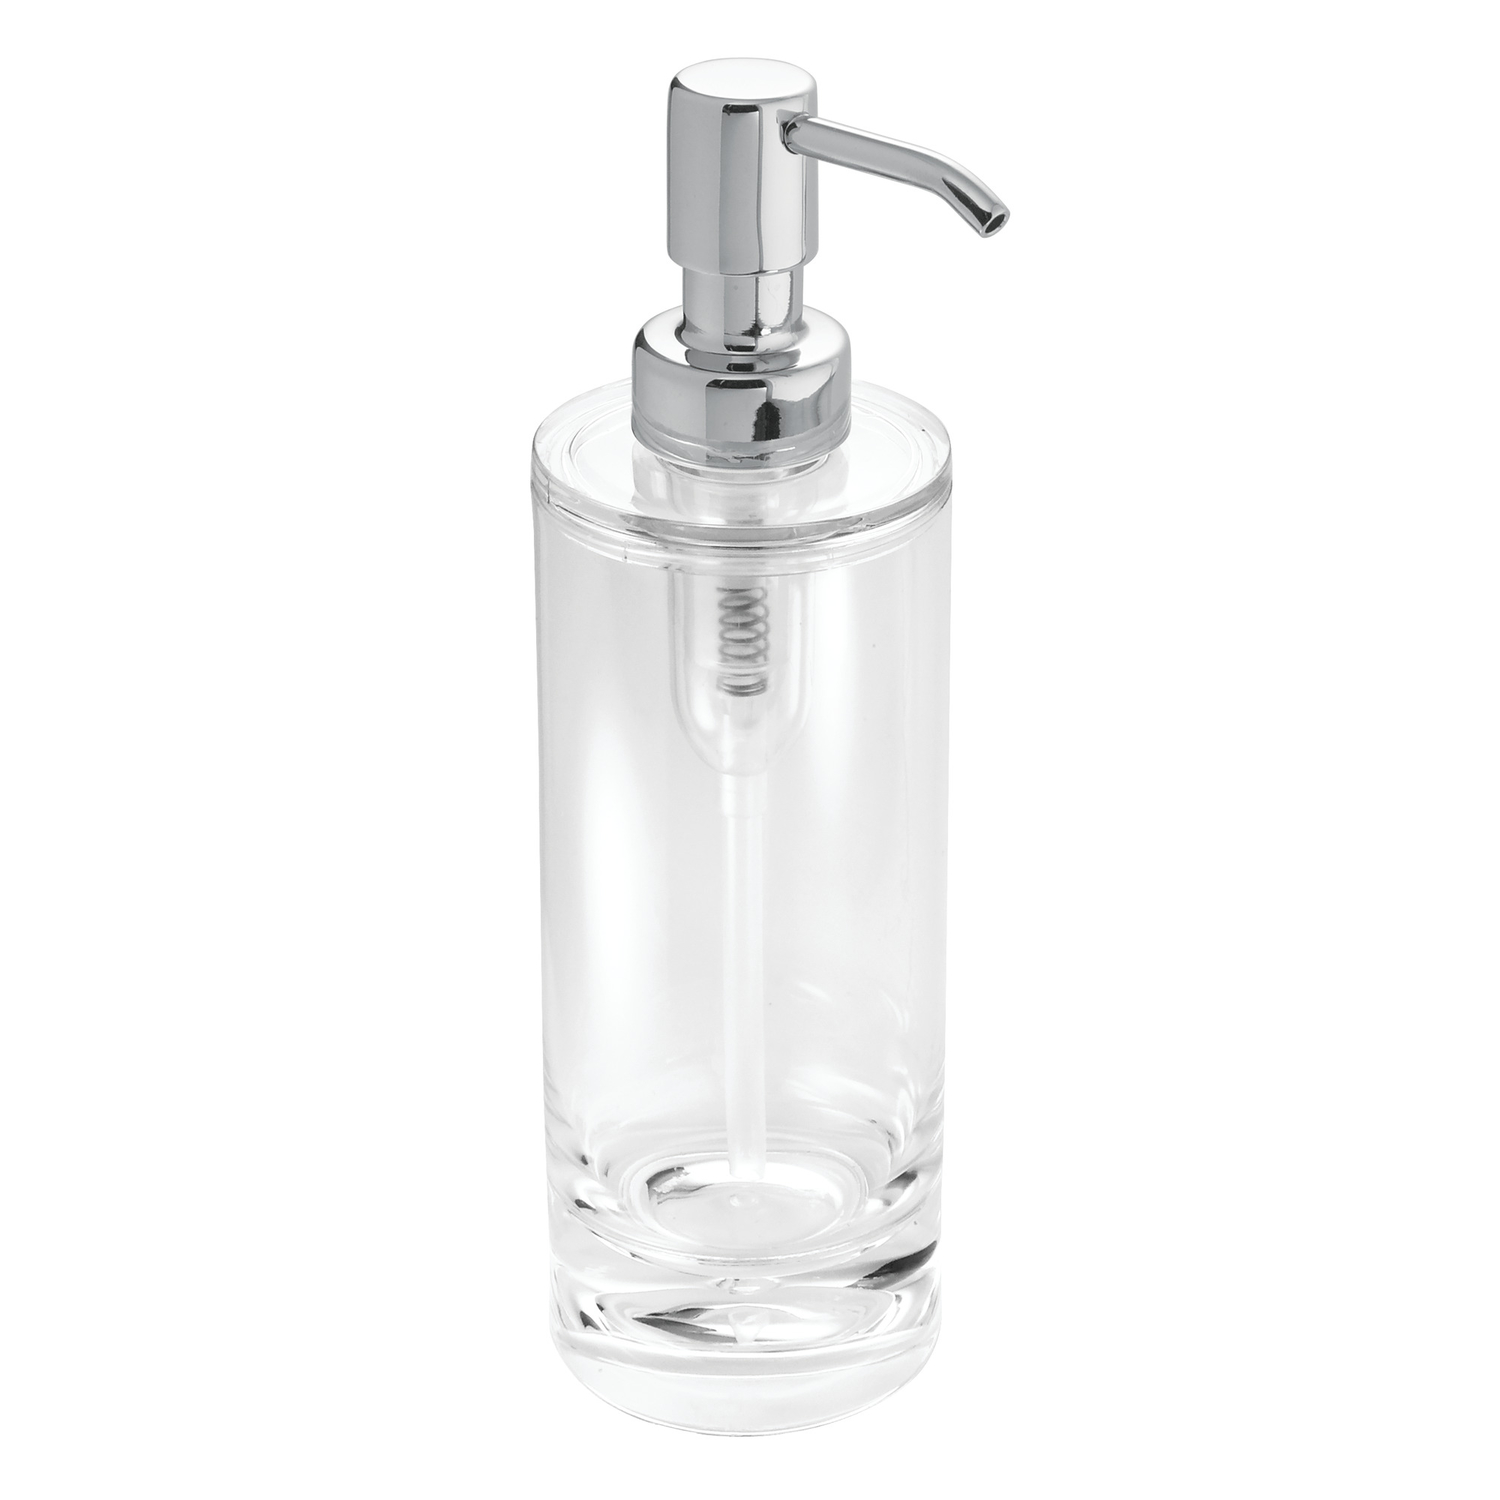 InterDesign  Eva Line  Lotion/Soap Dispenser  8 in. H x 2-1/2 in. L x 2-1/2 in. W Clear  Acrylic  Cl